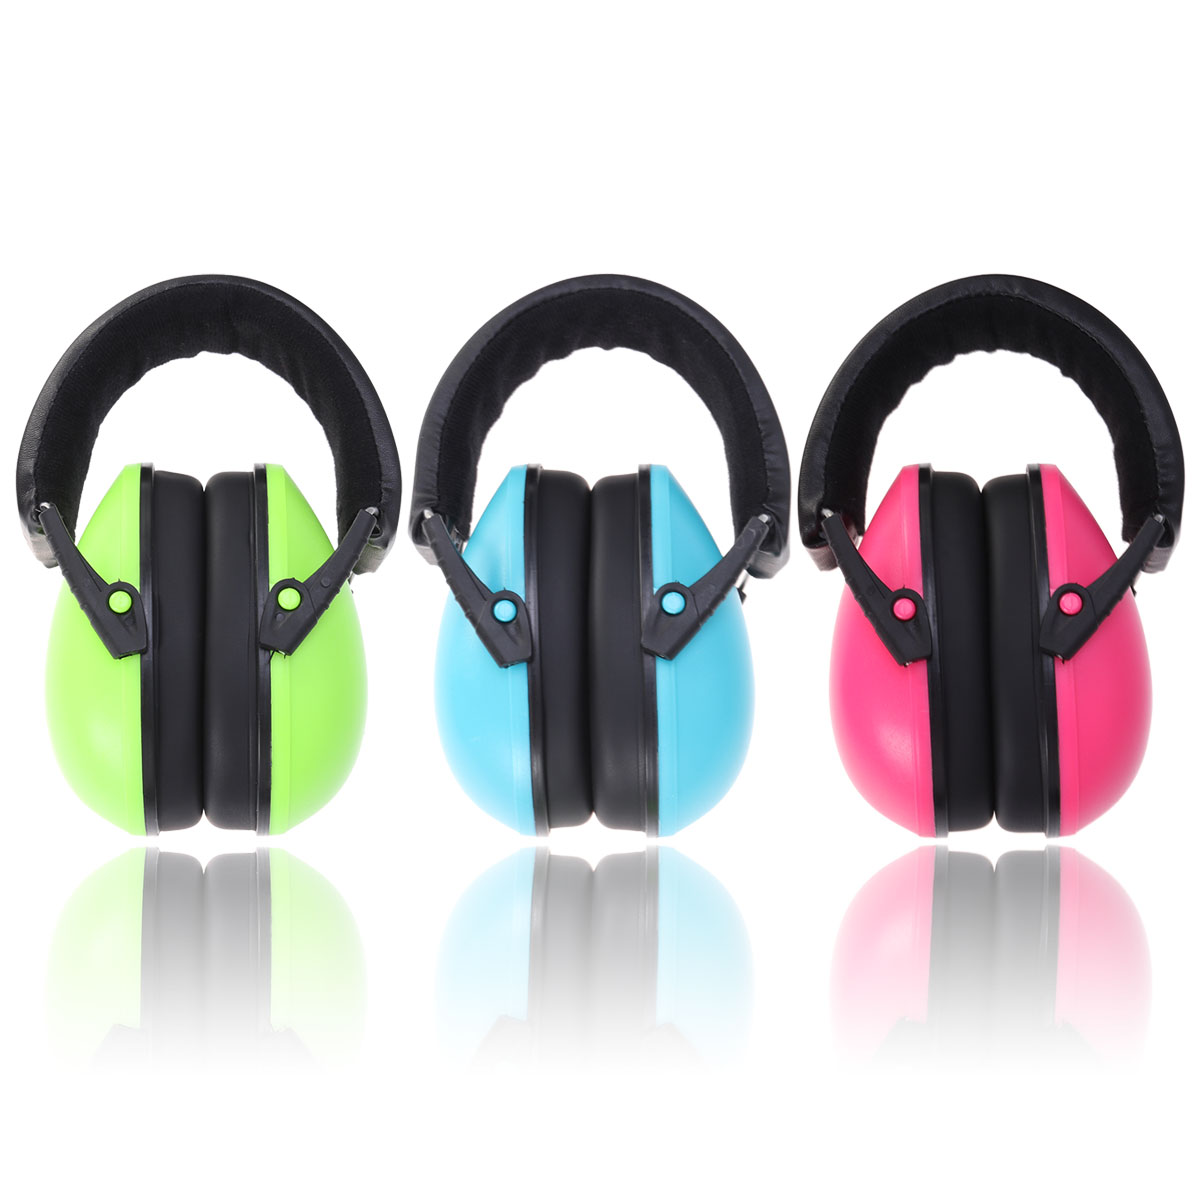 Baby Hearing Protection Earmuff Noise Cancelling Ear Muffs For Sleep Play Study